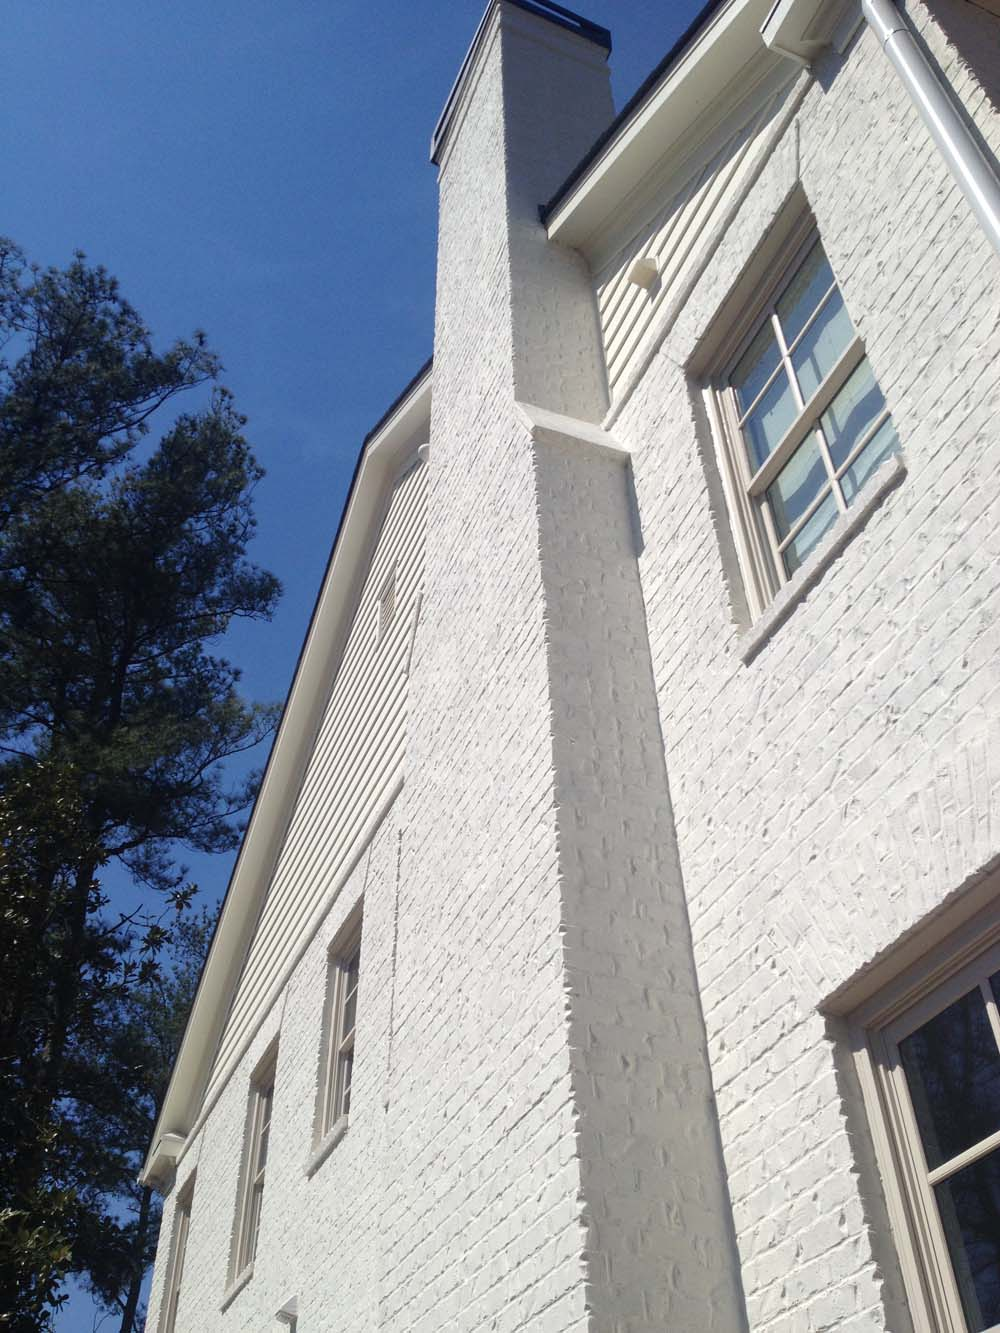 Beautiful Opaque Limewash Paint On Exterior Brick In